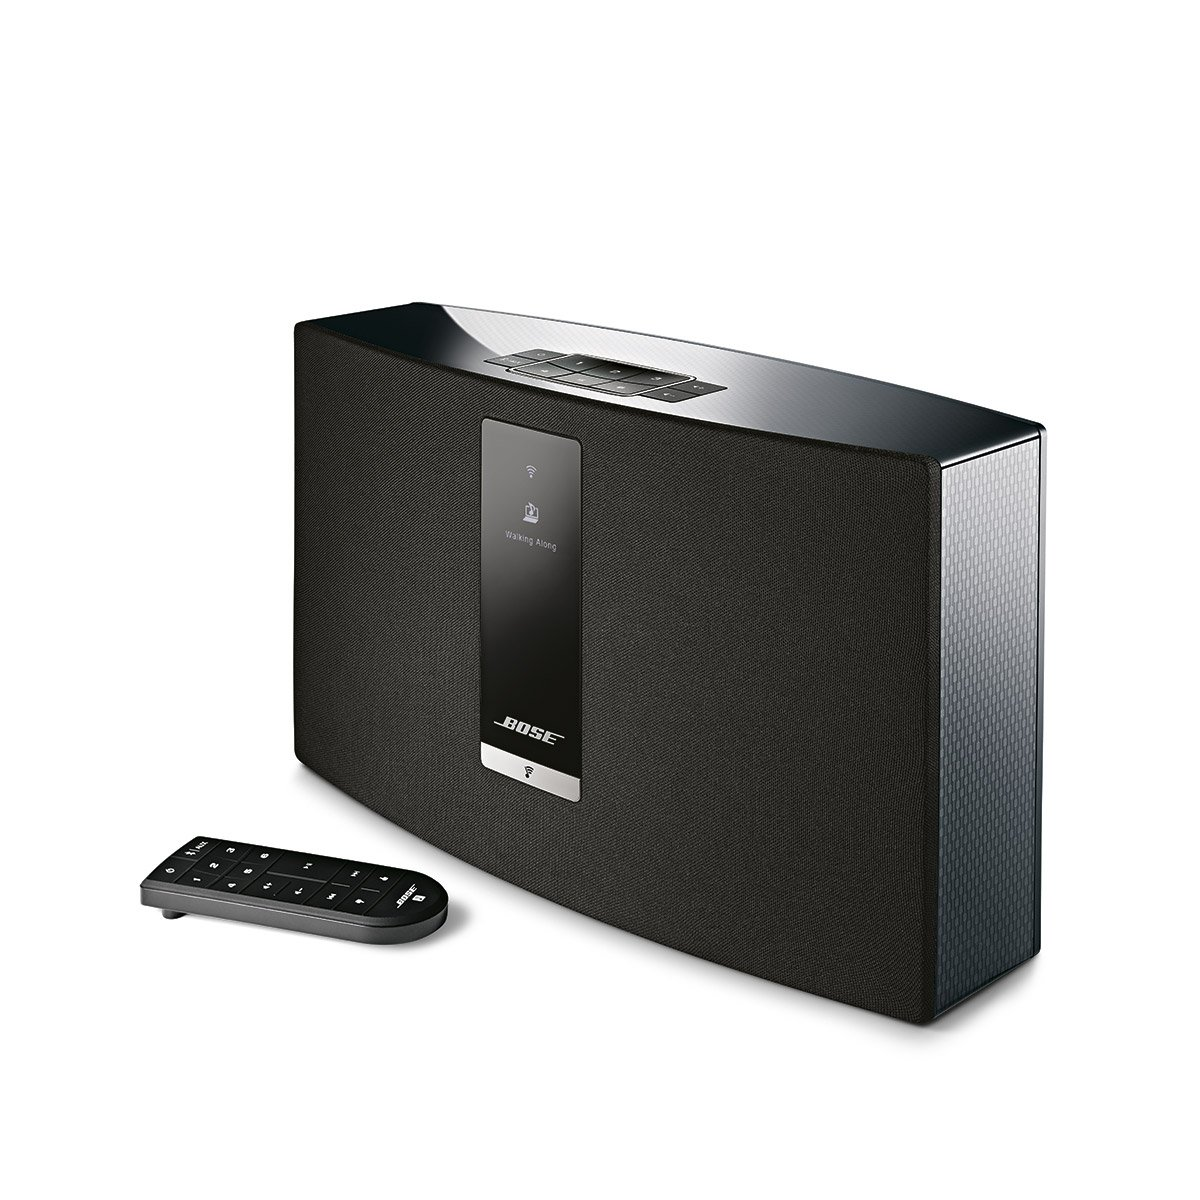 bose 130 soundtouch. bose soundtouch 20 series iii wireless speaker system: amazon.co.uk: electronics 130 soundtouch 9